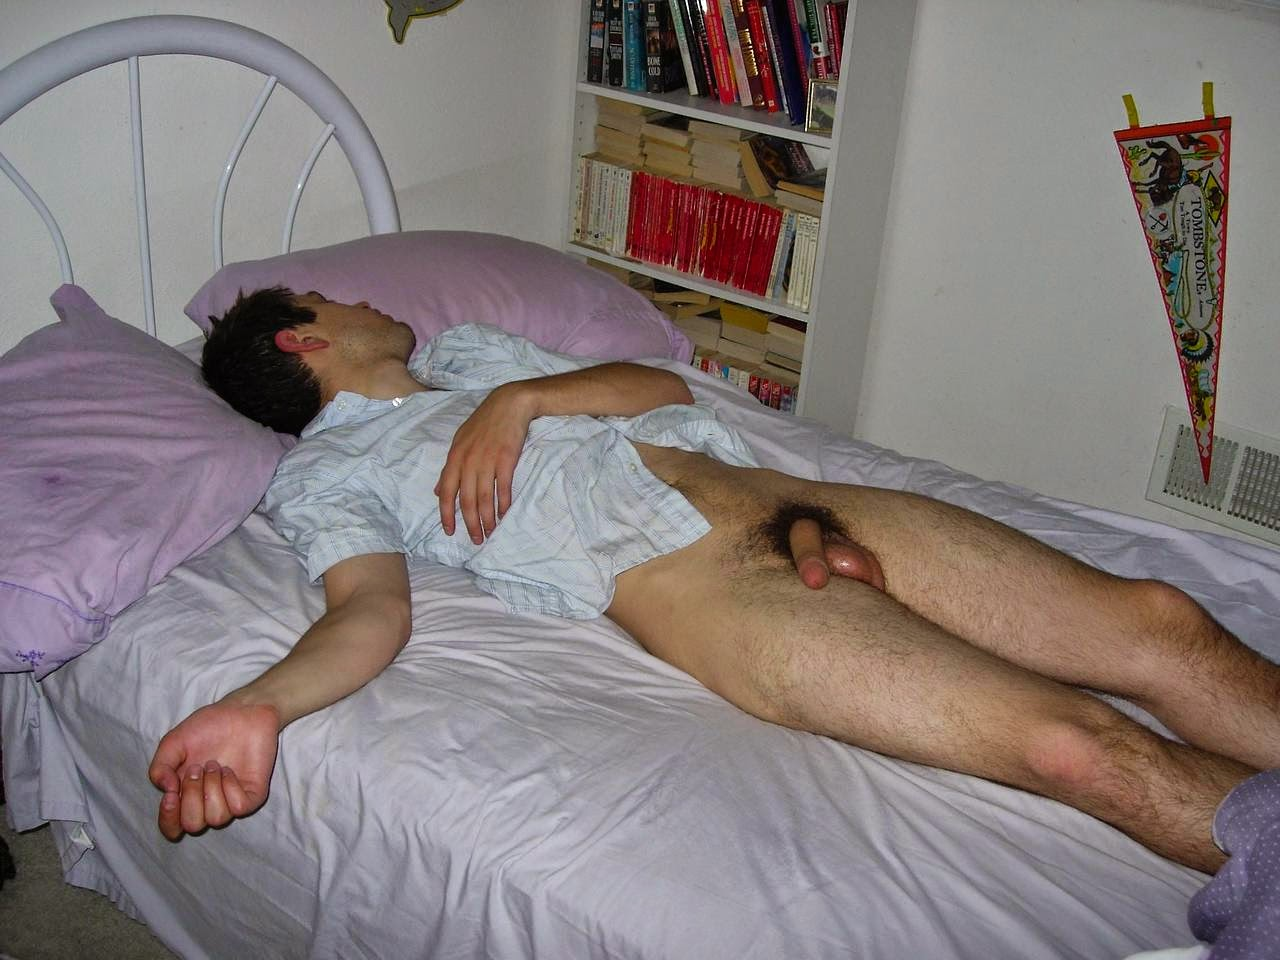 Boys Naked While Asleep